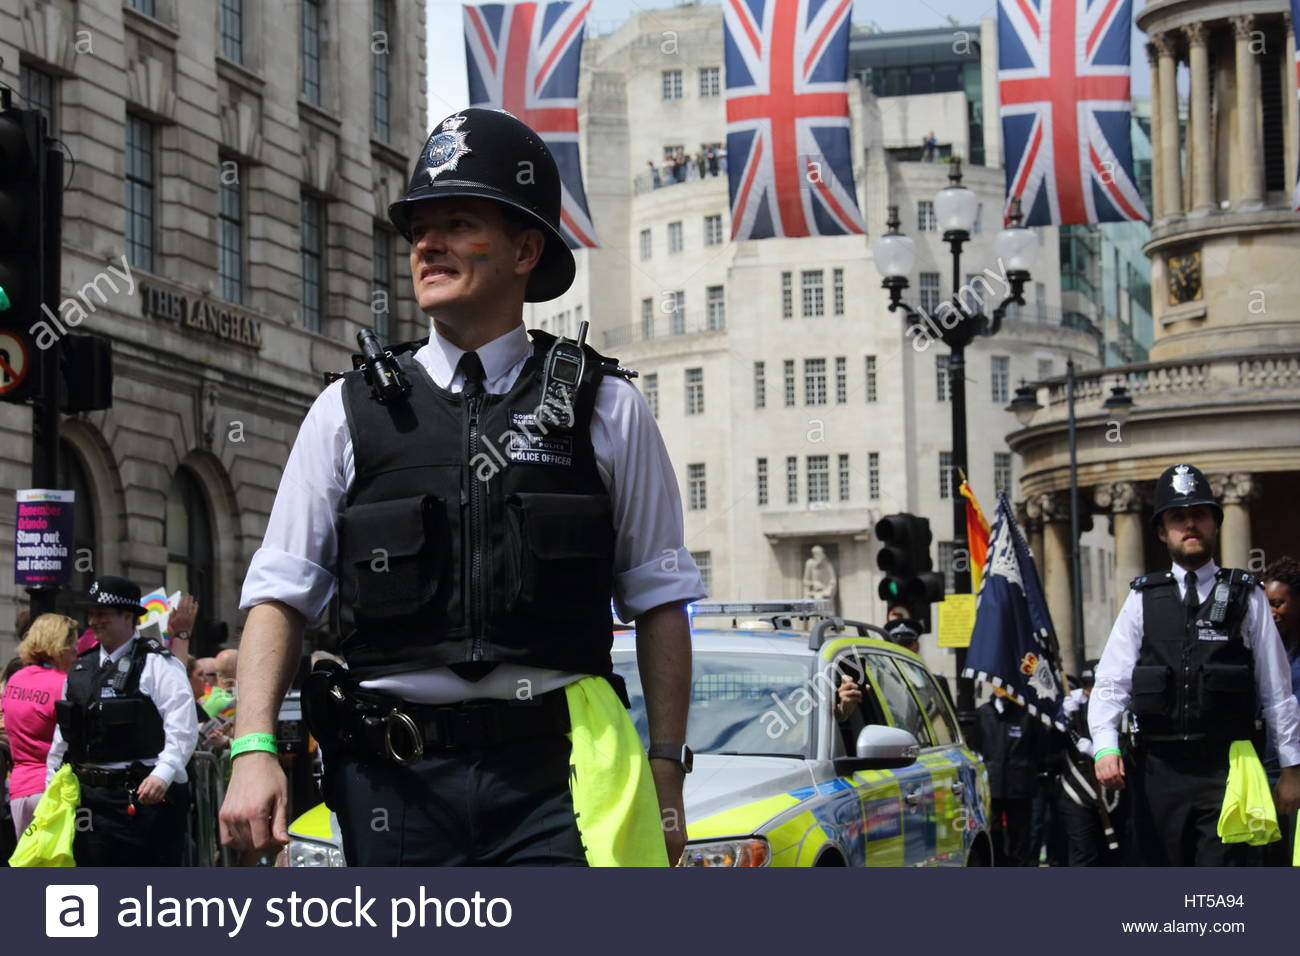 A British police officer smiles as he participates in the 2016 London Pride festival Credit: reallifephotos / Alamy - Stock Image